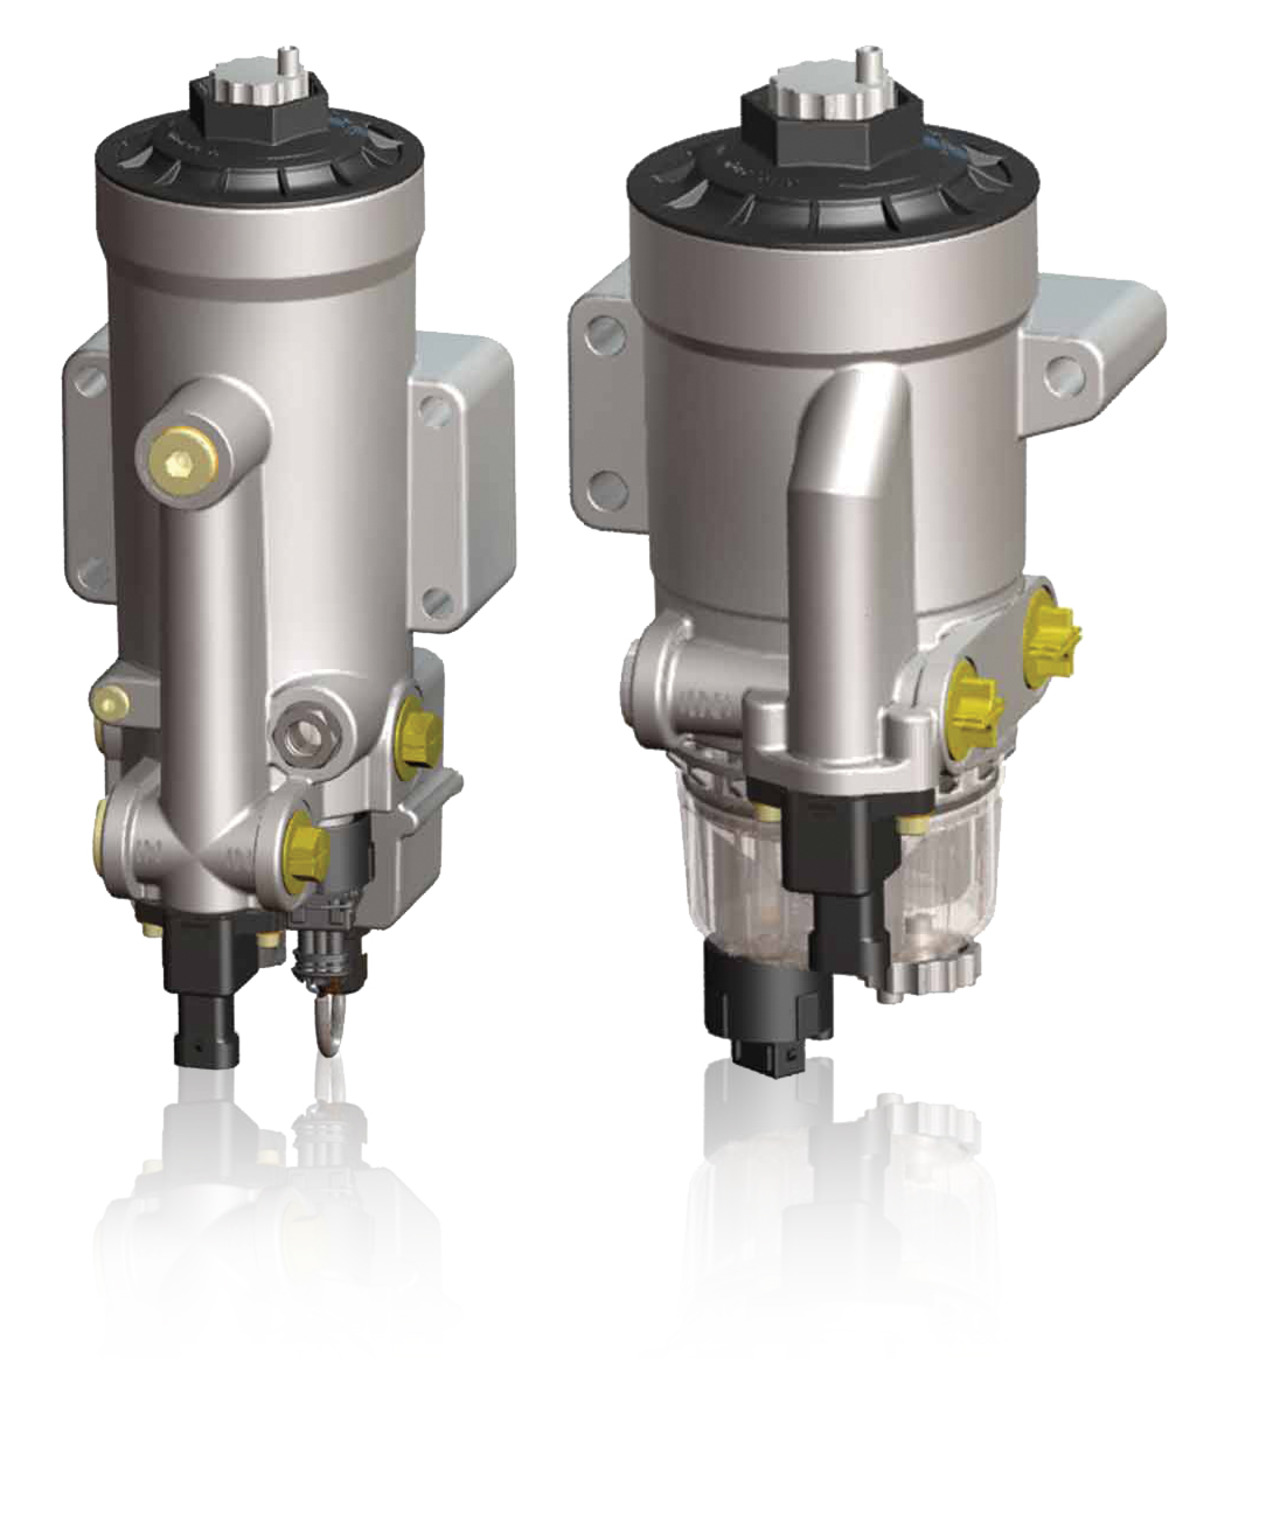 hight resolution of the schroeder industries hdp on board diesel coalescing filter offers a modern cartridge filter system designed for use in heavy duty diesel applications